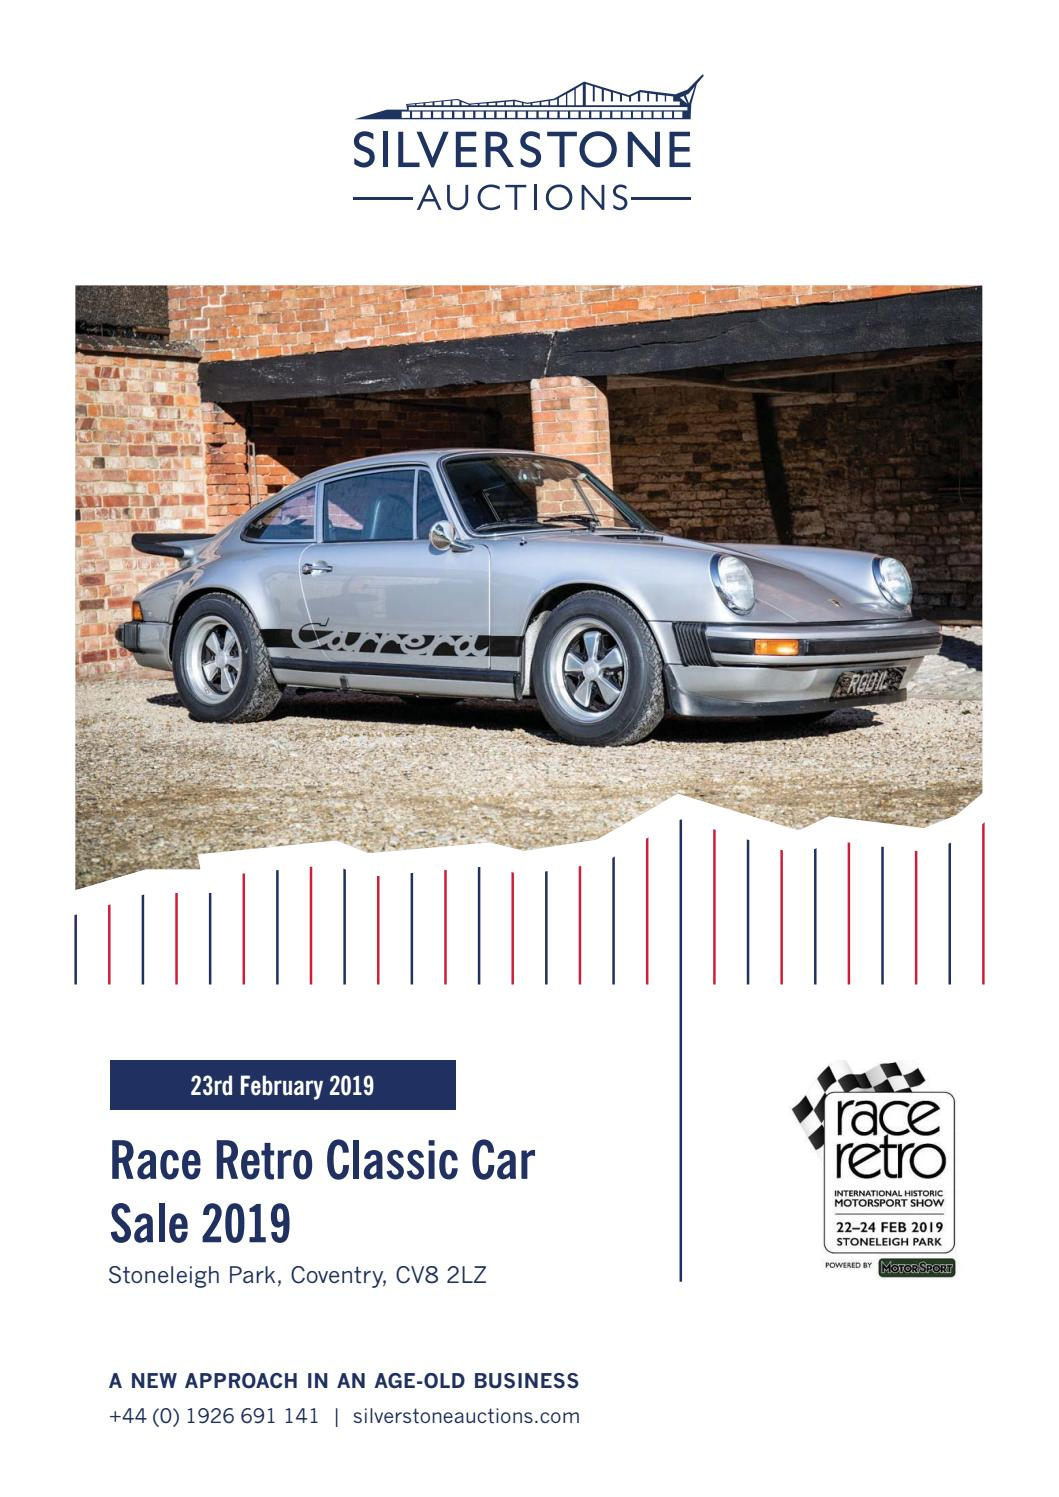 d0712c0673 Silverstone Race Retro Classic Car Sale 2019 - 23rd February 2019 by ...